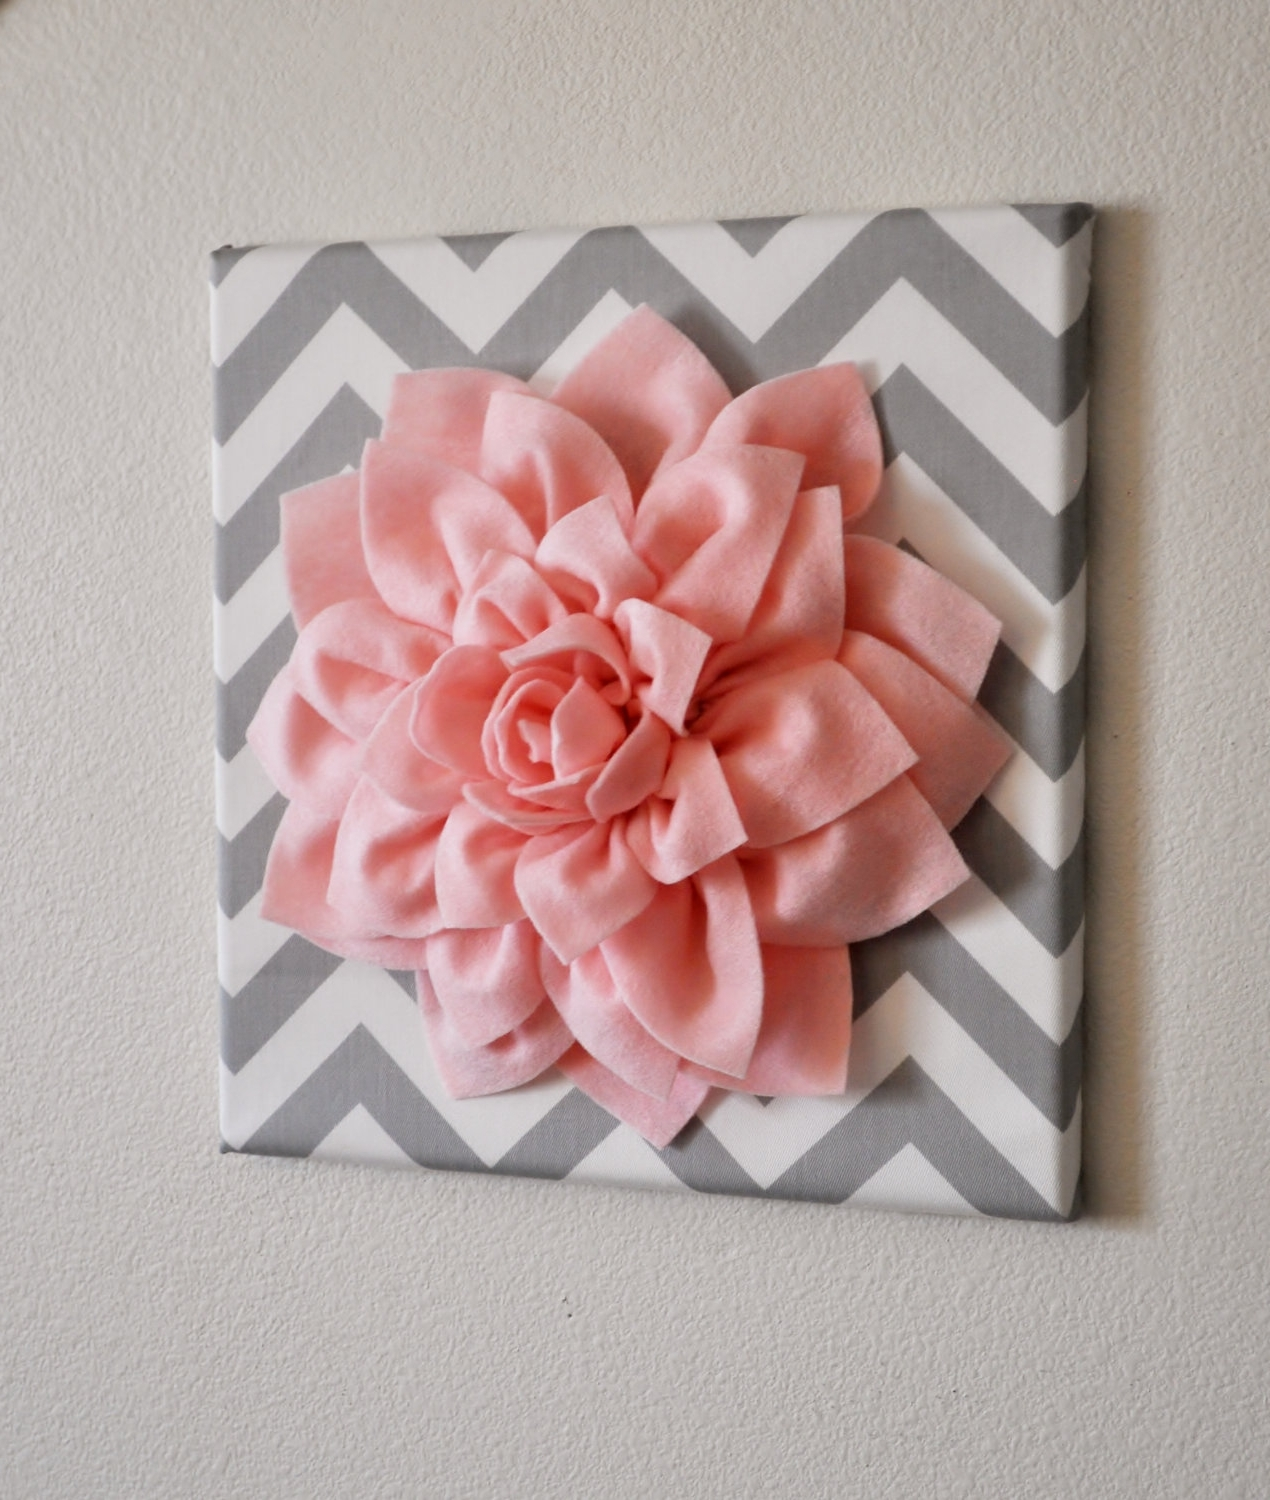 3D Flower Wall Art Regarding Well Known 3D Flower On Canvas. This Is Such A Good Idea (View 5 of 15)